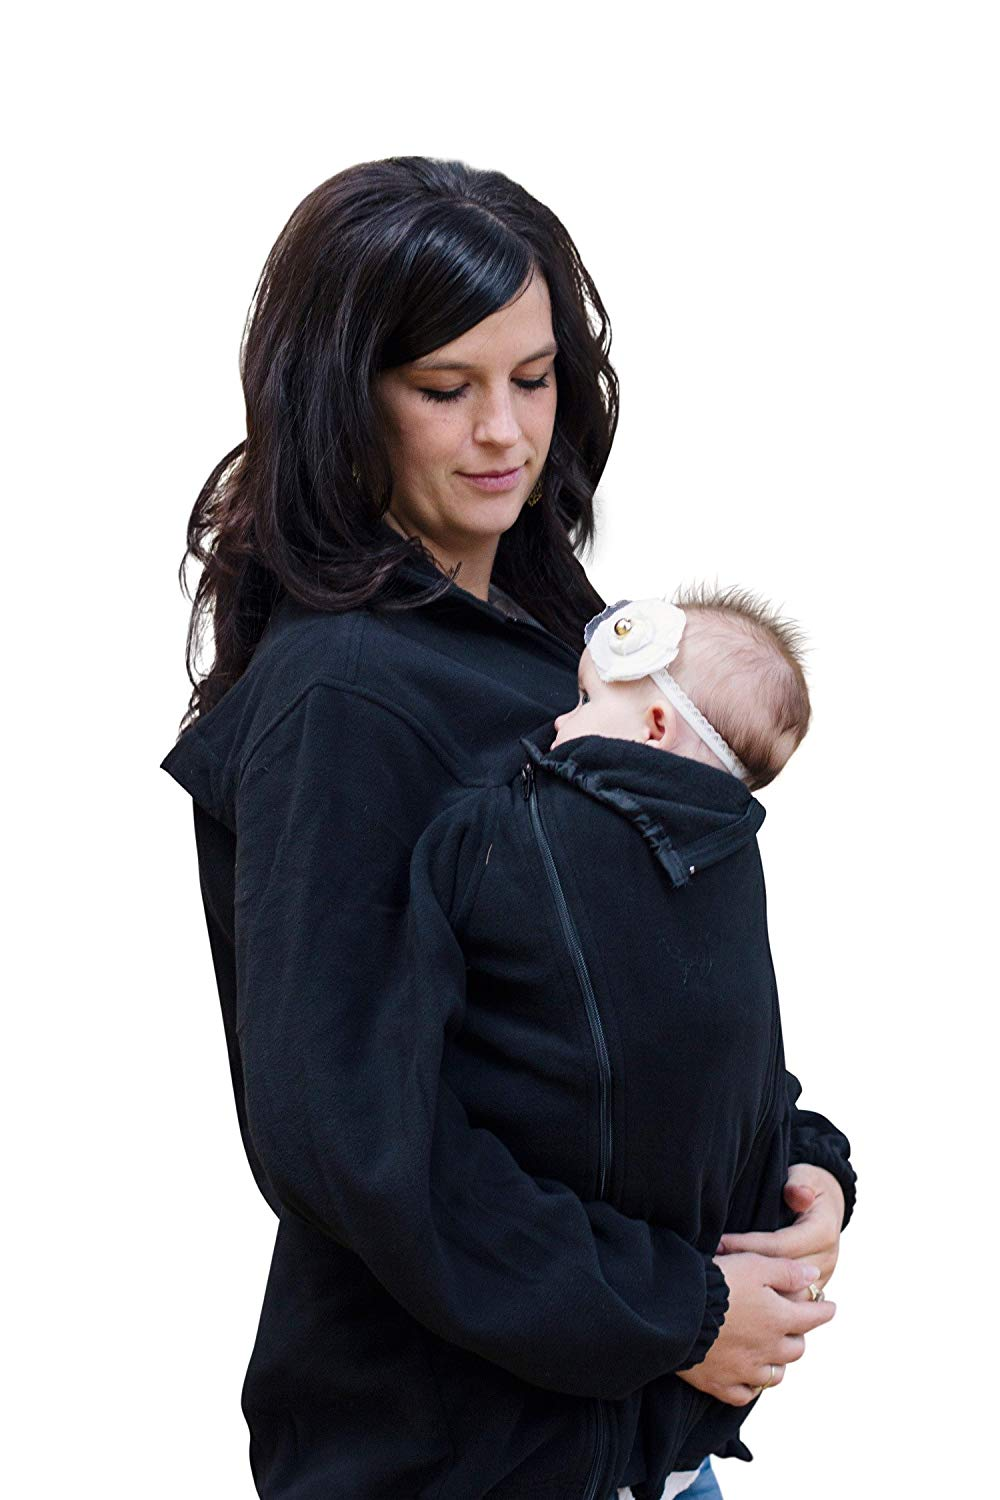 Suse's Kinder Babywearing Fleece Jacket for Use Over Baby Carrie